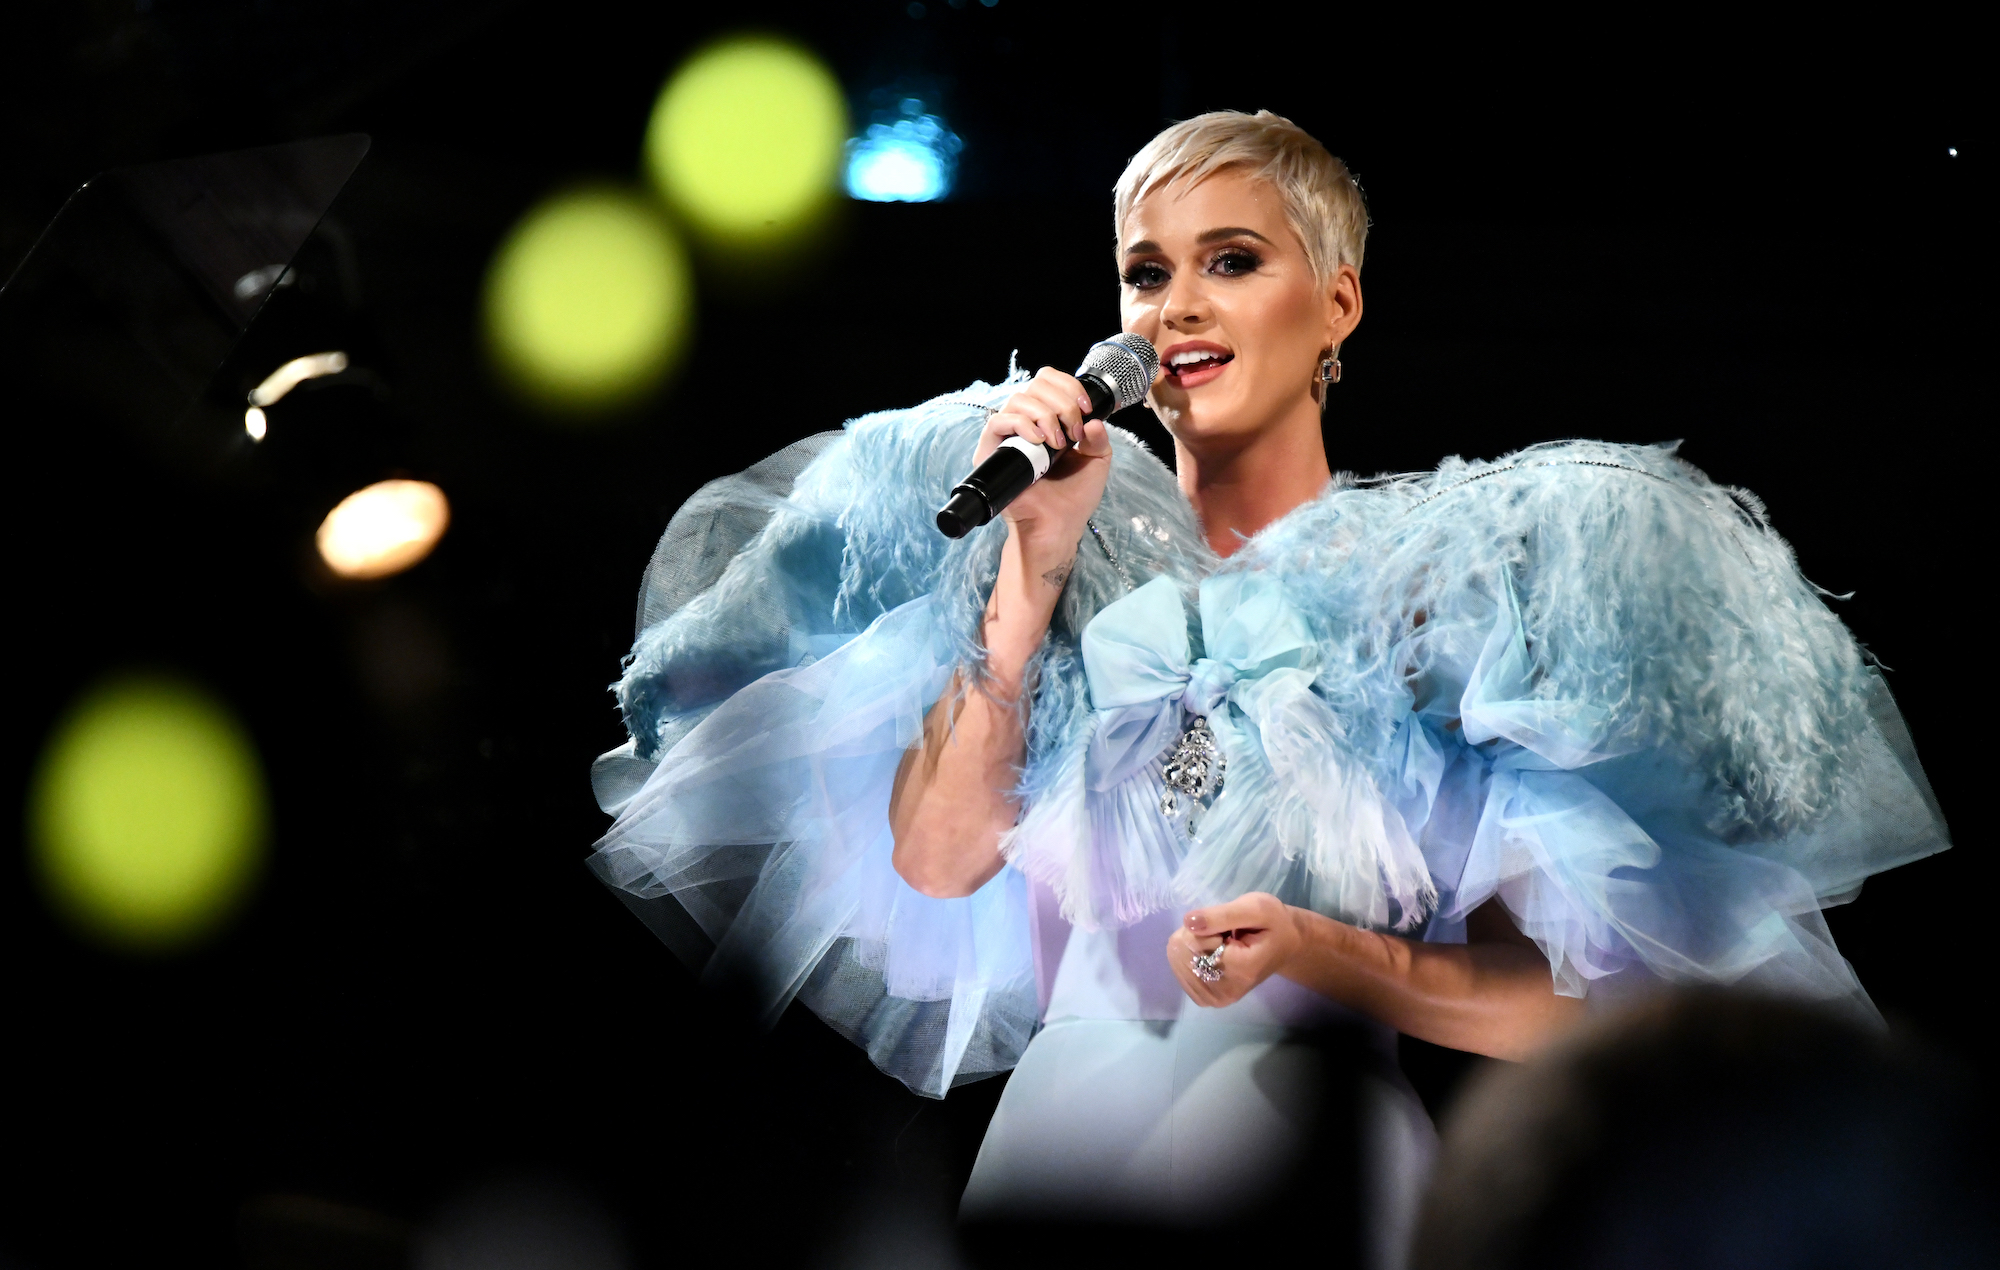 Jury rules Katy Perry's 'Dark Horse' copied a 2009 Christian rap song